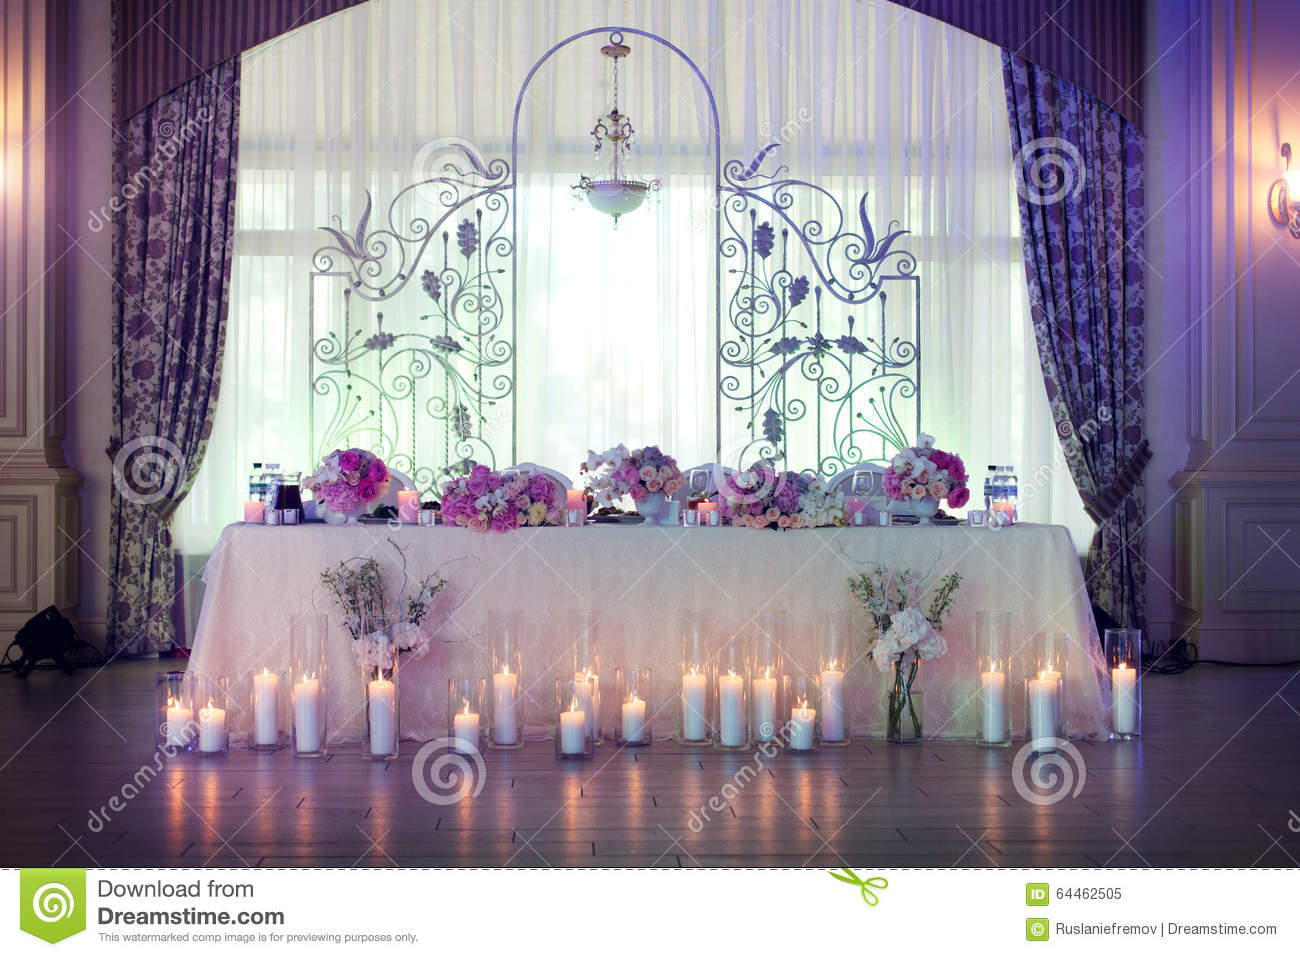 Elegance table set up for wedding Royalty Free Stock Photo & Flowers In The Vase. Elegance Table Set Up For Wedding Stock Image ...